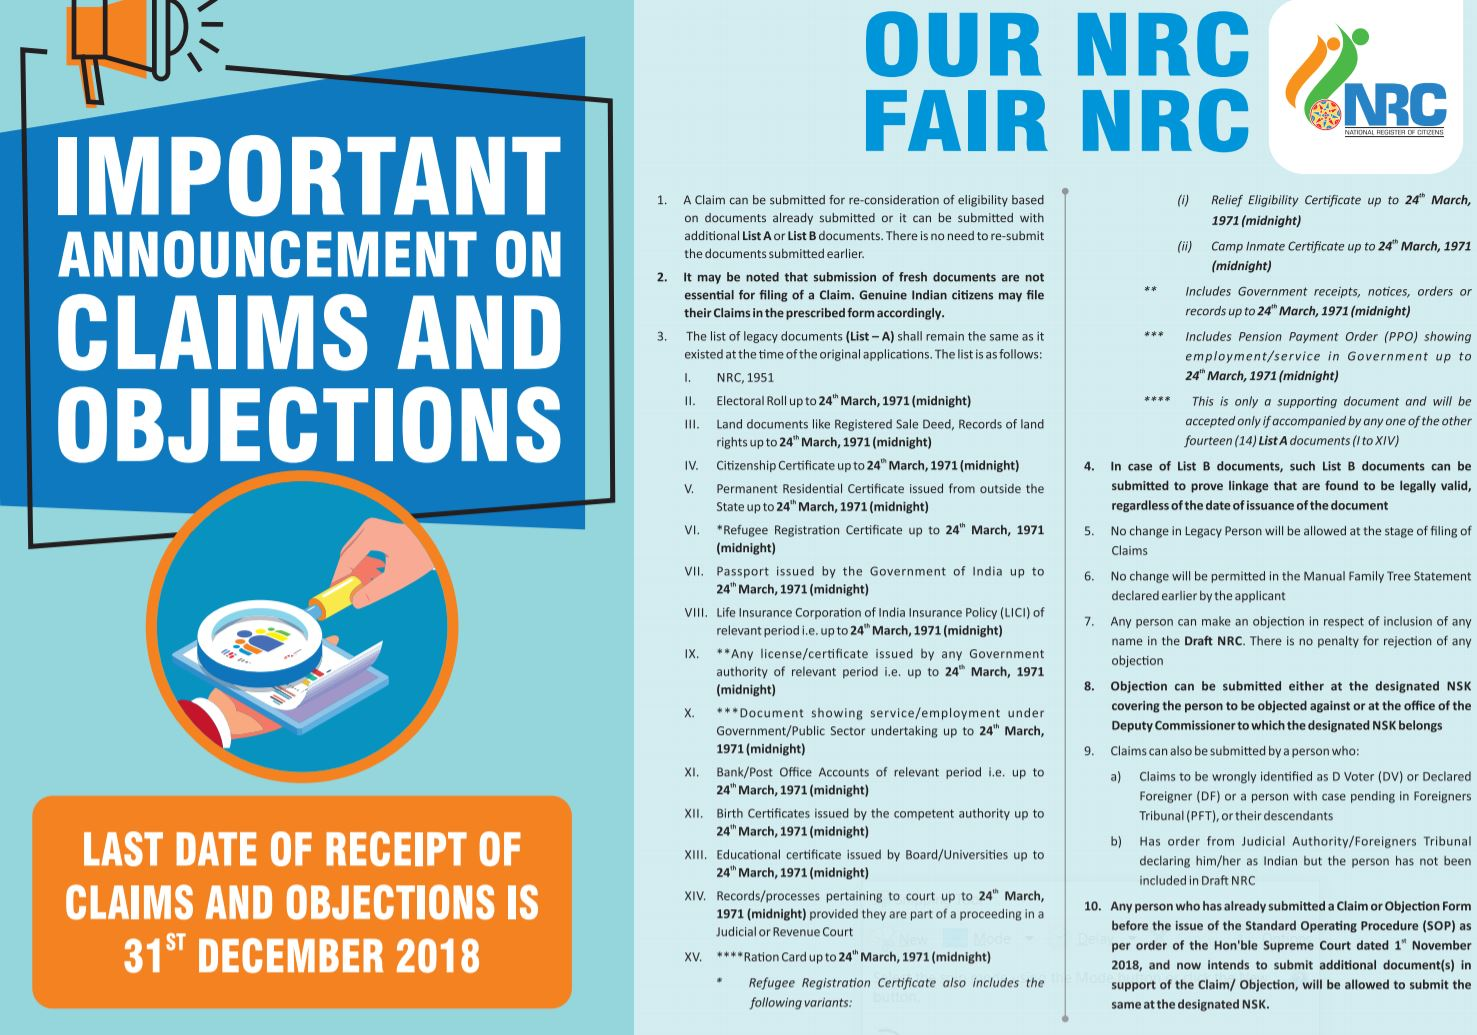 Not decided to go ahead with nationwide NRC – MoH